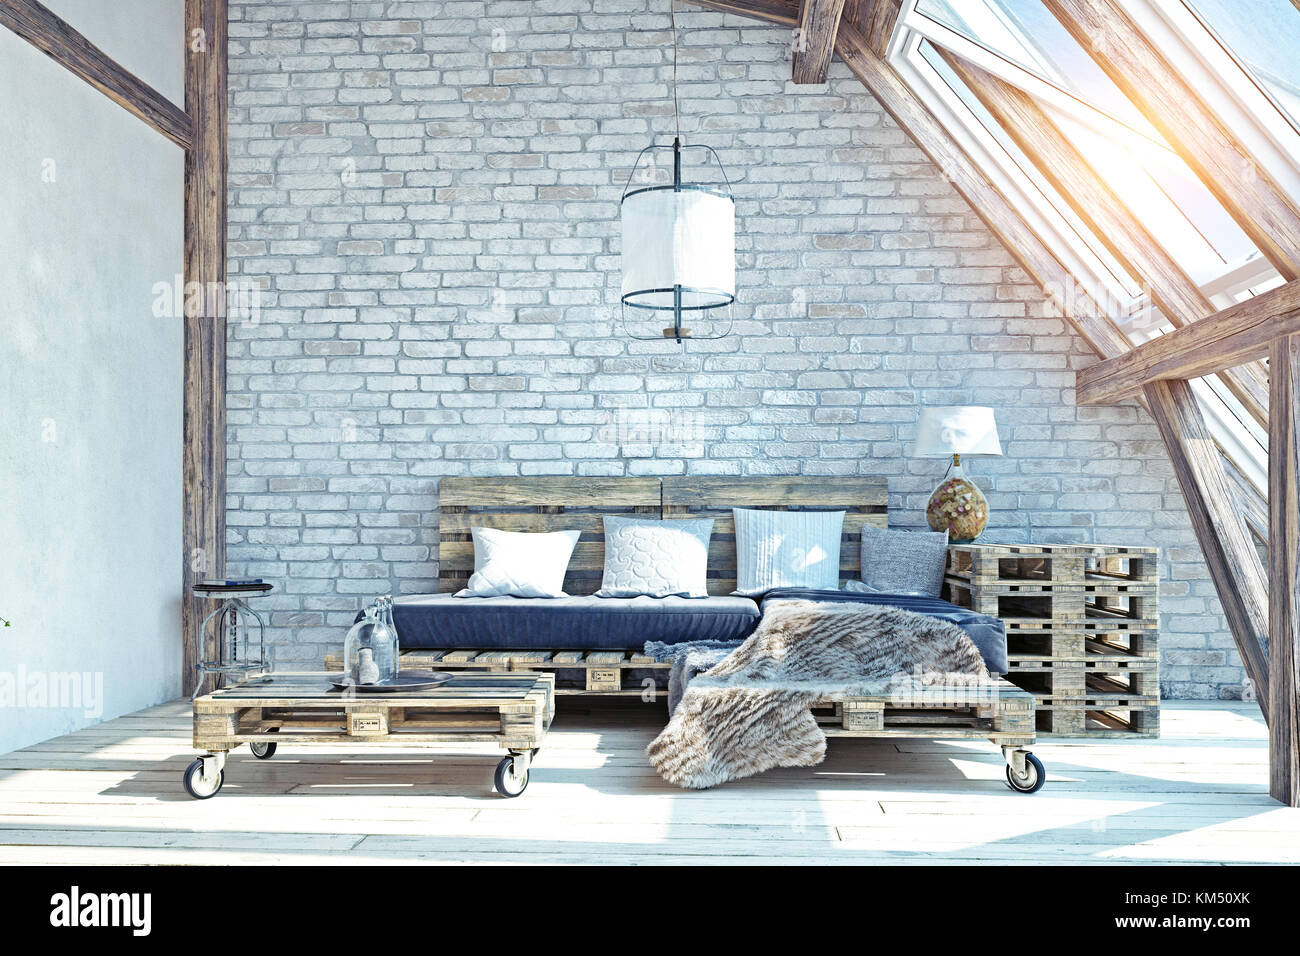 Pallet Furniture Stock Photos & Pallet Furniture Stock Images - Alamy